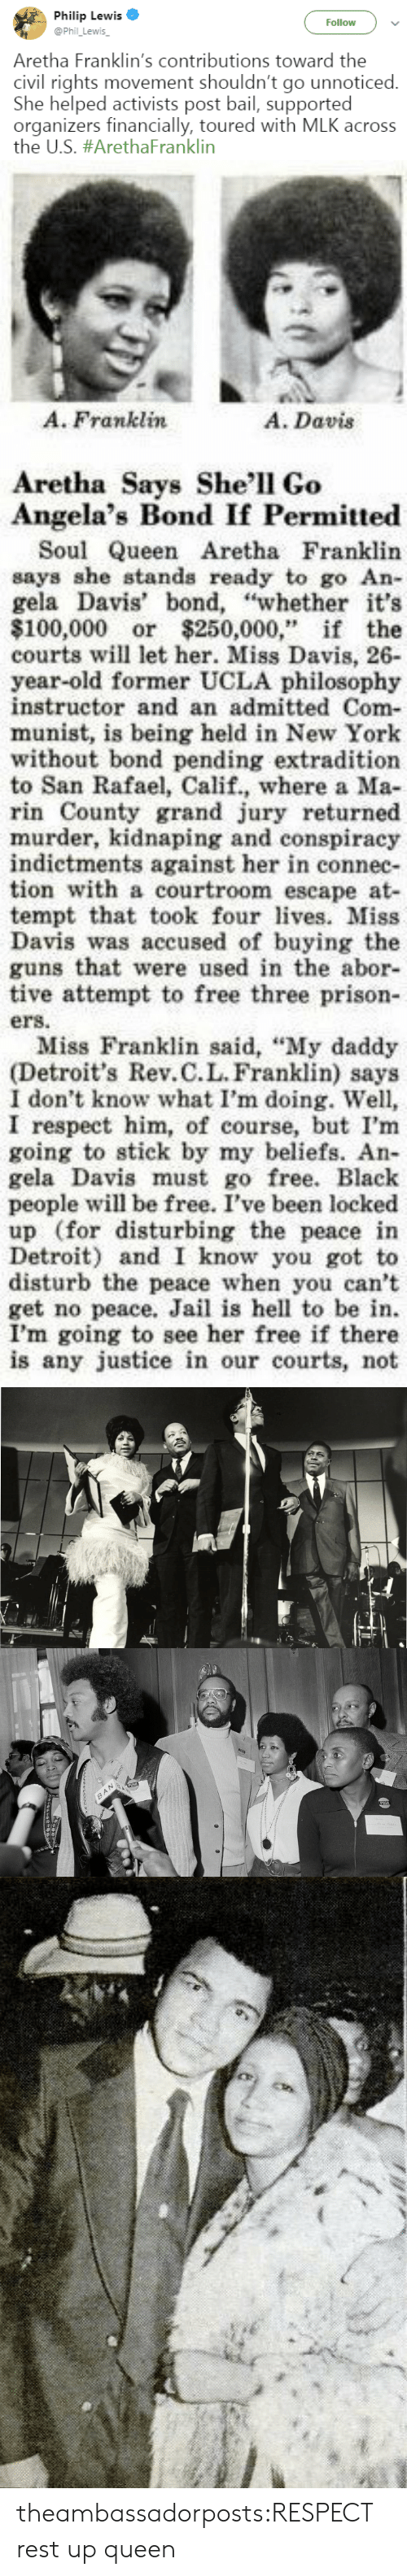 """Anaconda, Detroit, and Guns: Philip Lewis  @Phil_Lewis  Follow  Aretha Franklin's contributions toward the  civil rights movement shouldn't go unnoticed.  She helped activists post bail, supported  organizers financially, toured with MLK across  the US. #ArethaFranklin   A. Franklin  A. Davis  Aretha Says She'll Go  Angela's Bond If Permitted  Soul Queen Aretha Franklin  says she stands ready to go An-  gela Davis' bond, """"whether it's  $100,000 or $250,000,"""" if the  courts will let her. Miss Davis, 26-  year-old former UCLA philosophy  instructor and an admitted Com-  munist, is being held in New York  without bond pending extradition  to San Rafael, Calif., where a Ma  rin County grand jury returned  murder, kidnaping and conspiracy  indictments against her in connec-  tion with a courtroom escape at-  tempt that took fourvs. Miss  Davis was accused of buying the  guns that were used in the abor-  tive attempt to free three prison  ers.  Miss Franklin said, """"My daddy  (Detroit's Rev.C.L. Franklin) says  I don't know what I'm doing. Well,  I respect him, of course, but I'm  going to stick by my beliefs. An-  gela Davis must go free. Black  people will be free. I've been locked  up (for disturbing the peace in  Detroit) and I know you got to  disturb the peace when you can't  get no peace. Jail is hell to be in.  I'm going to see her free if there  is any justice in our courts, not theambassadorposts:RESPECT  rest up queen"""